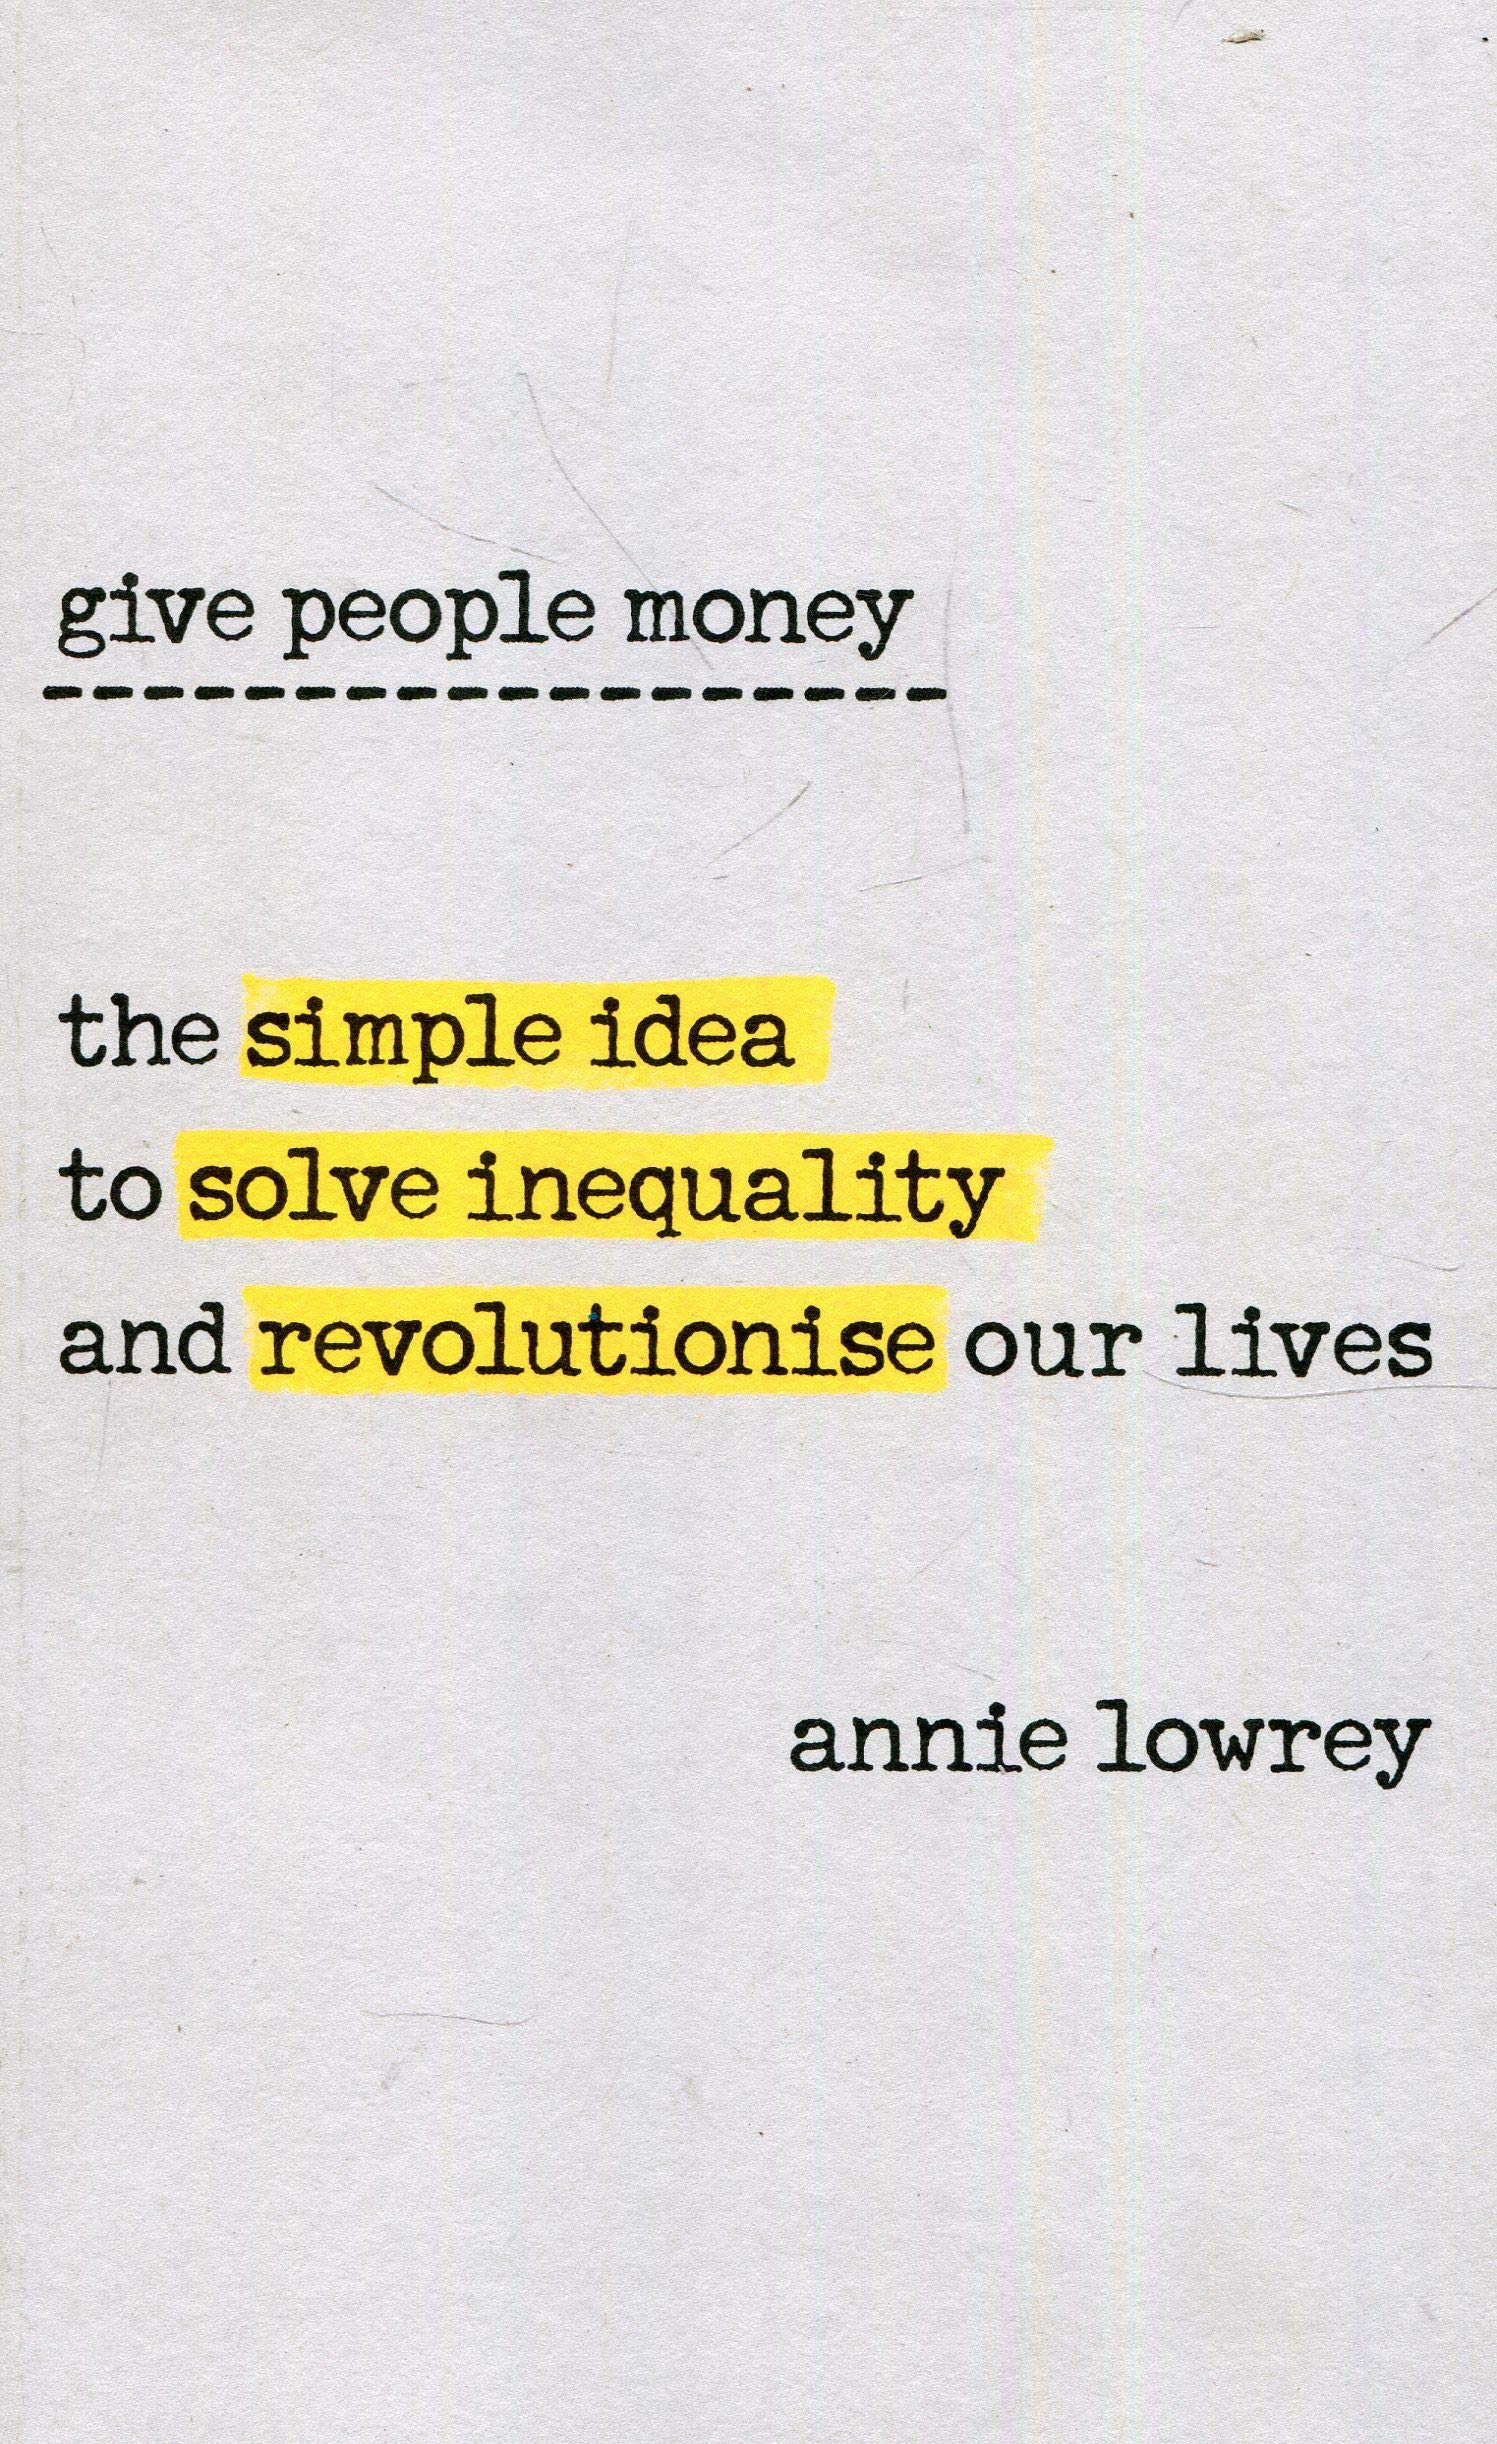 Give People Money: The simple idea to solve inequality and revolutionise our lives